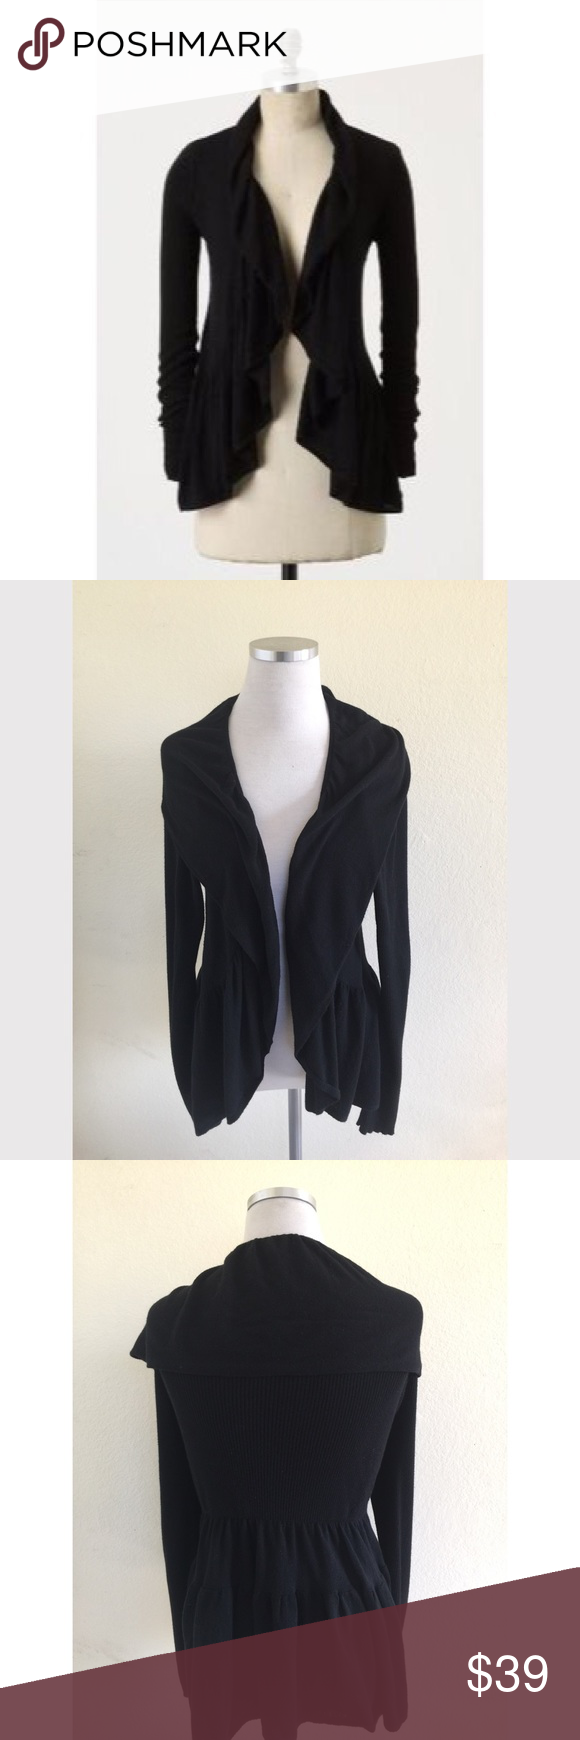 Hiking Cardigan Guinevere M Ruffles Anthropologie HAOwTR